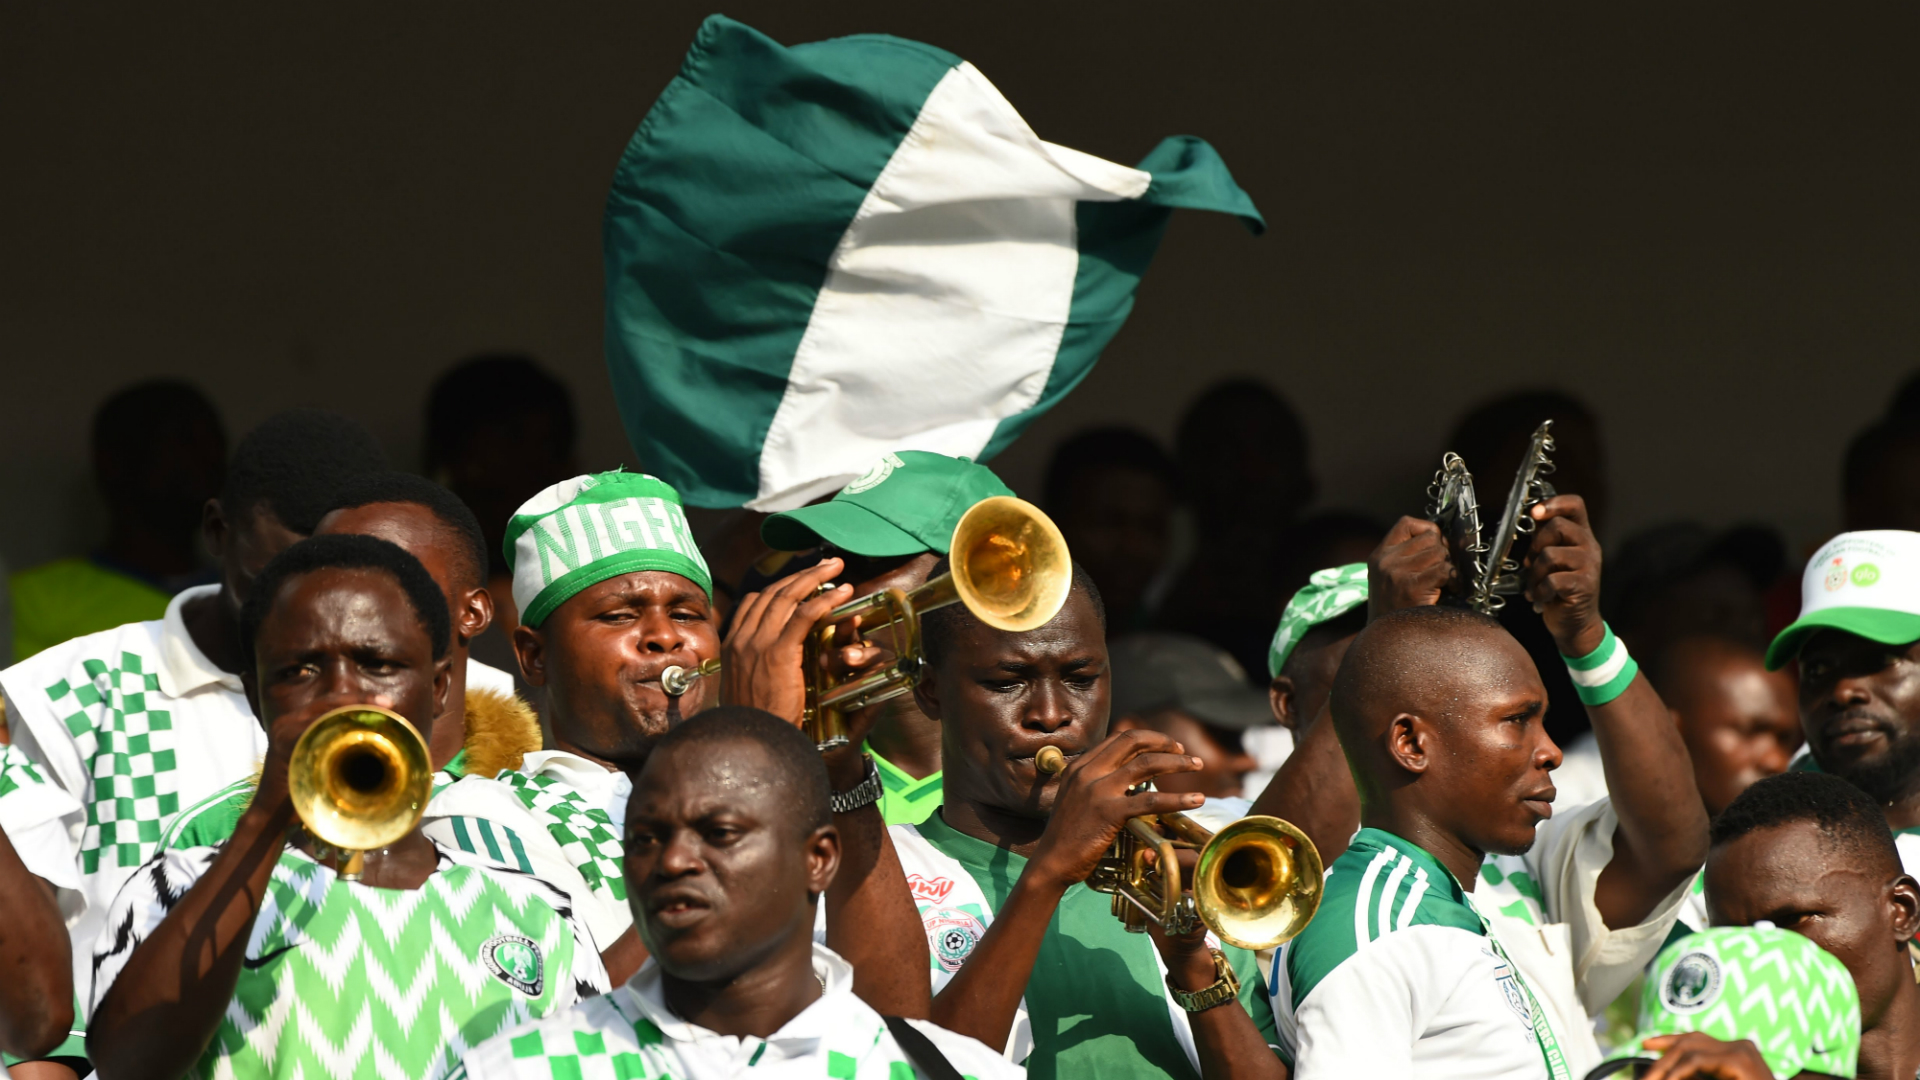 'Super Eagles 2 Nigeria 1' - Fans react as horror broadcast overshadows Benin triumph